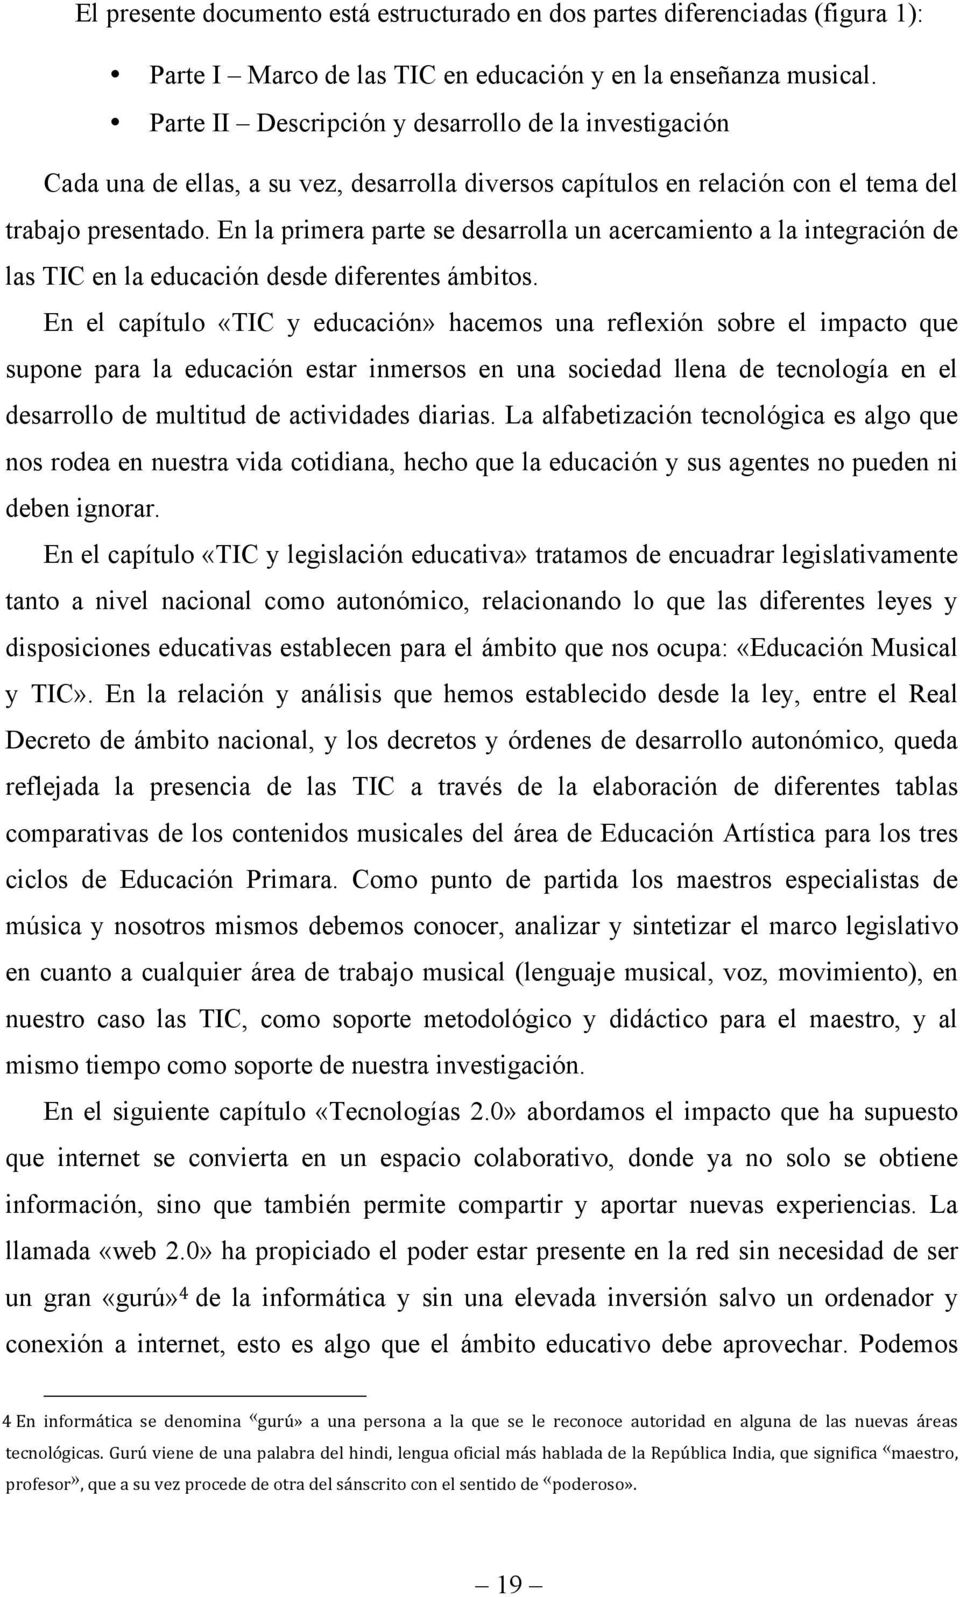 UNIVERSIDAD AUTÓNOMA DE MADRID TESIS DOCTORAL - PDF